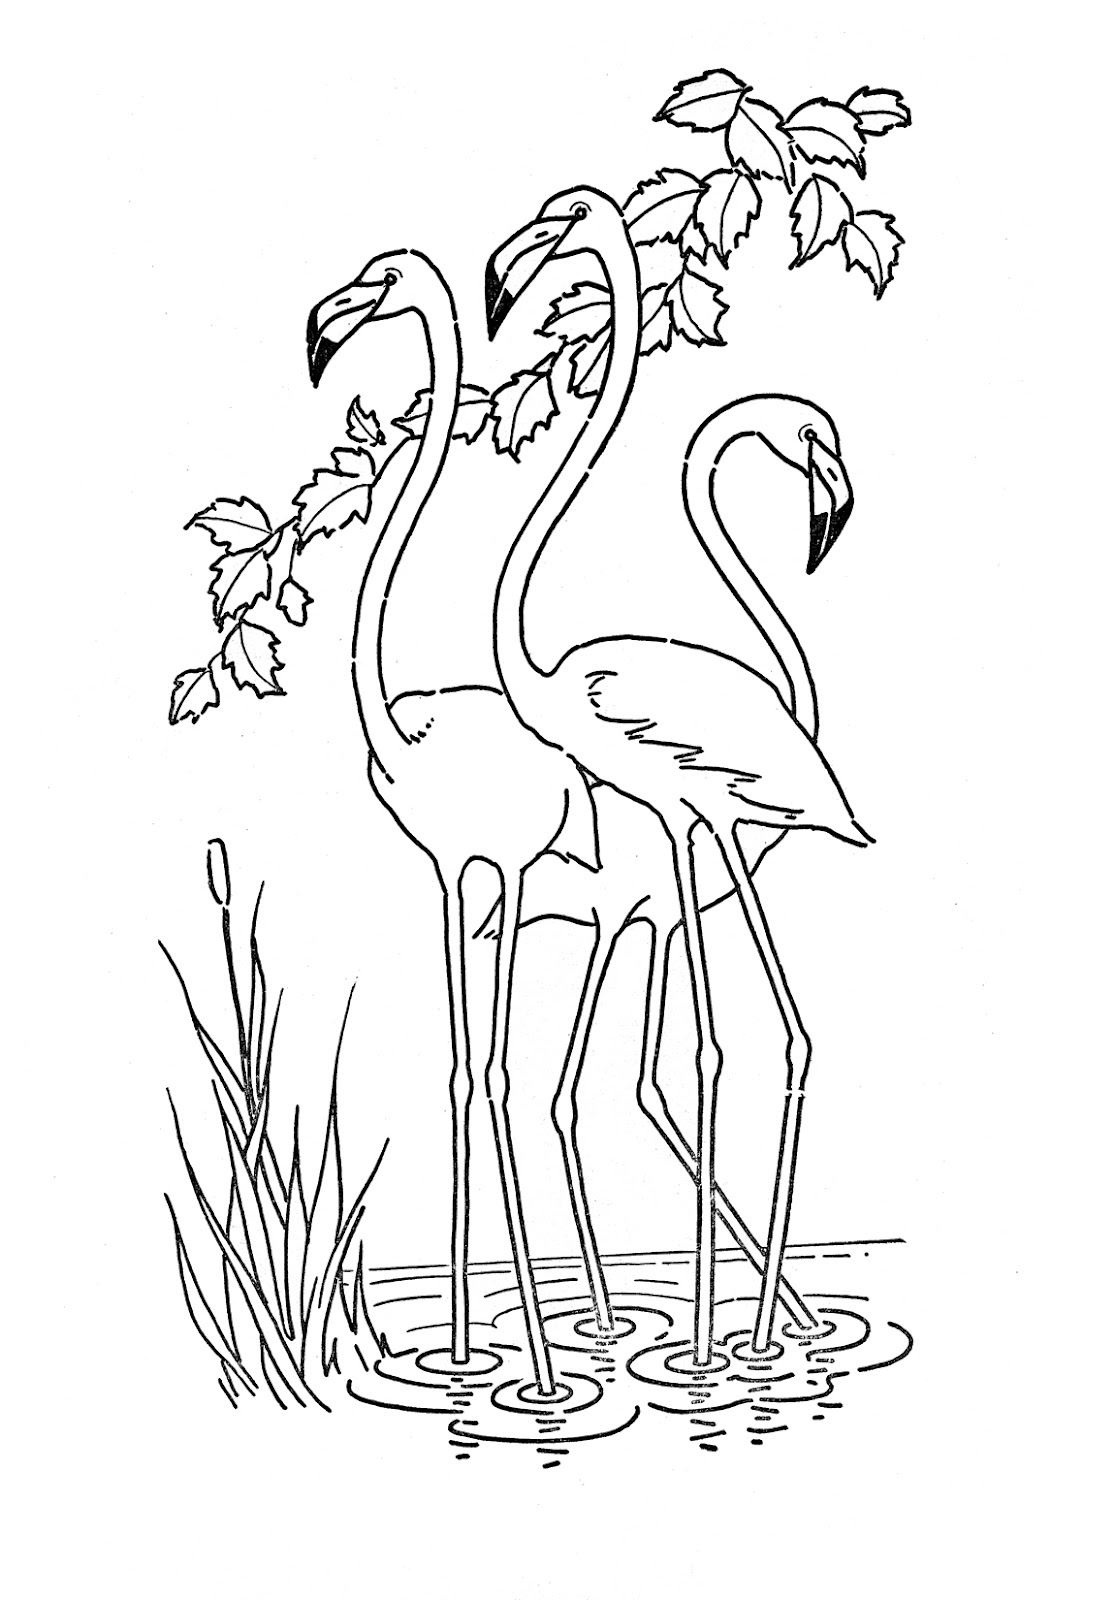 kids printable flamingo coloring page - Flamingo Coloring Pages